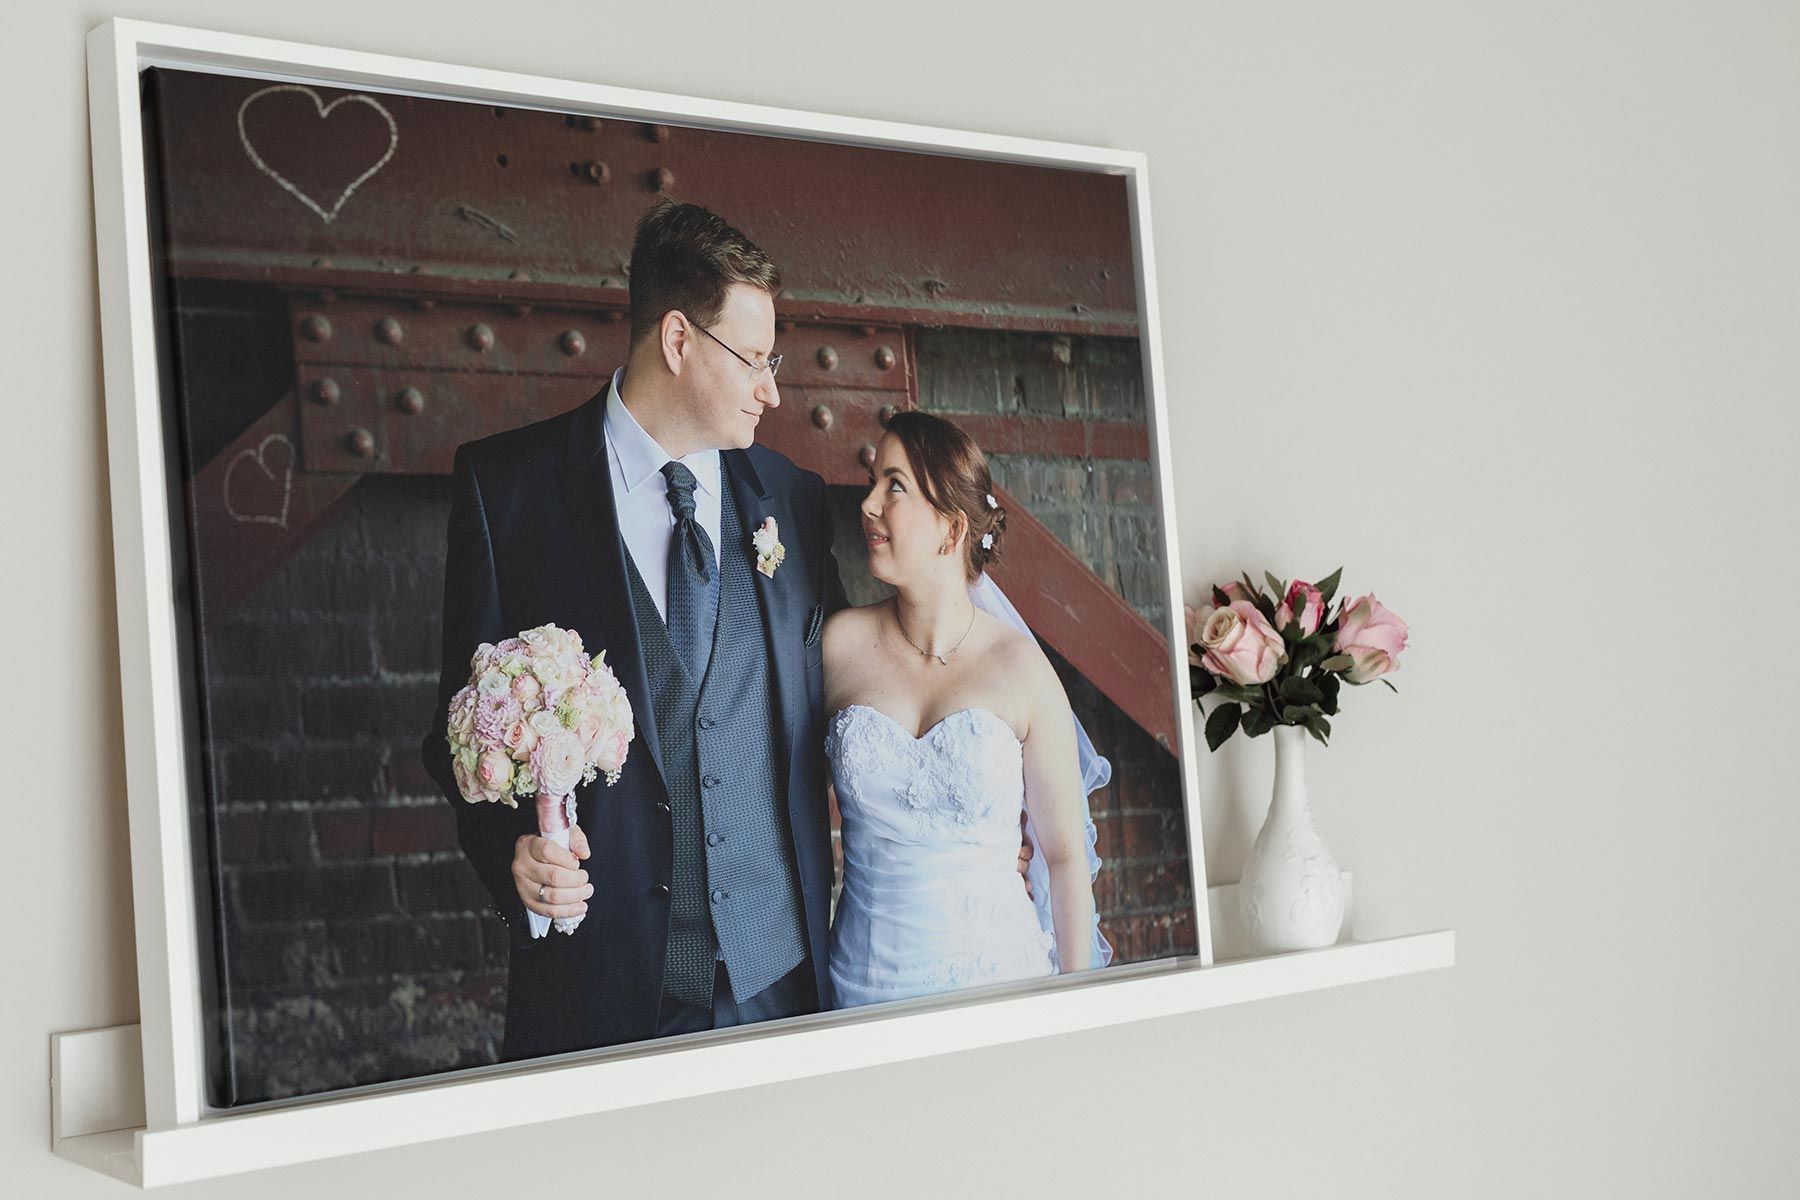 Your most beautiful wedding moments as a mural - Your most beautiful wedding moments as a mural